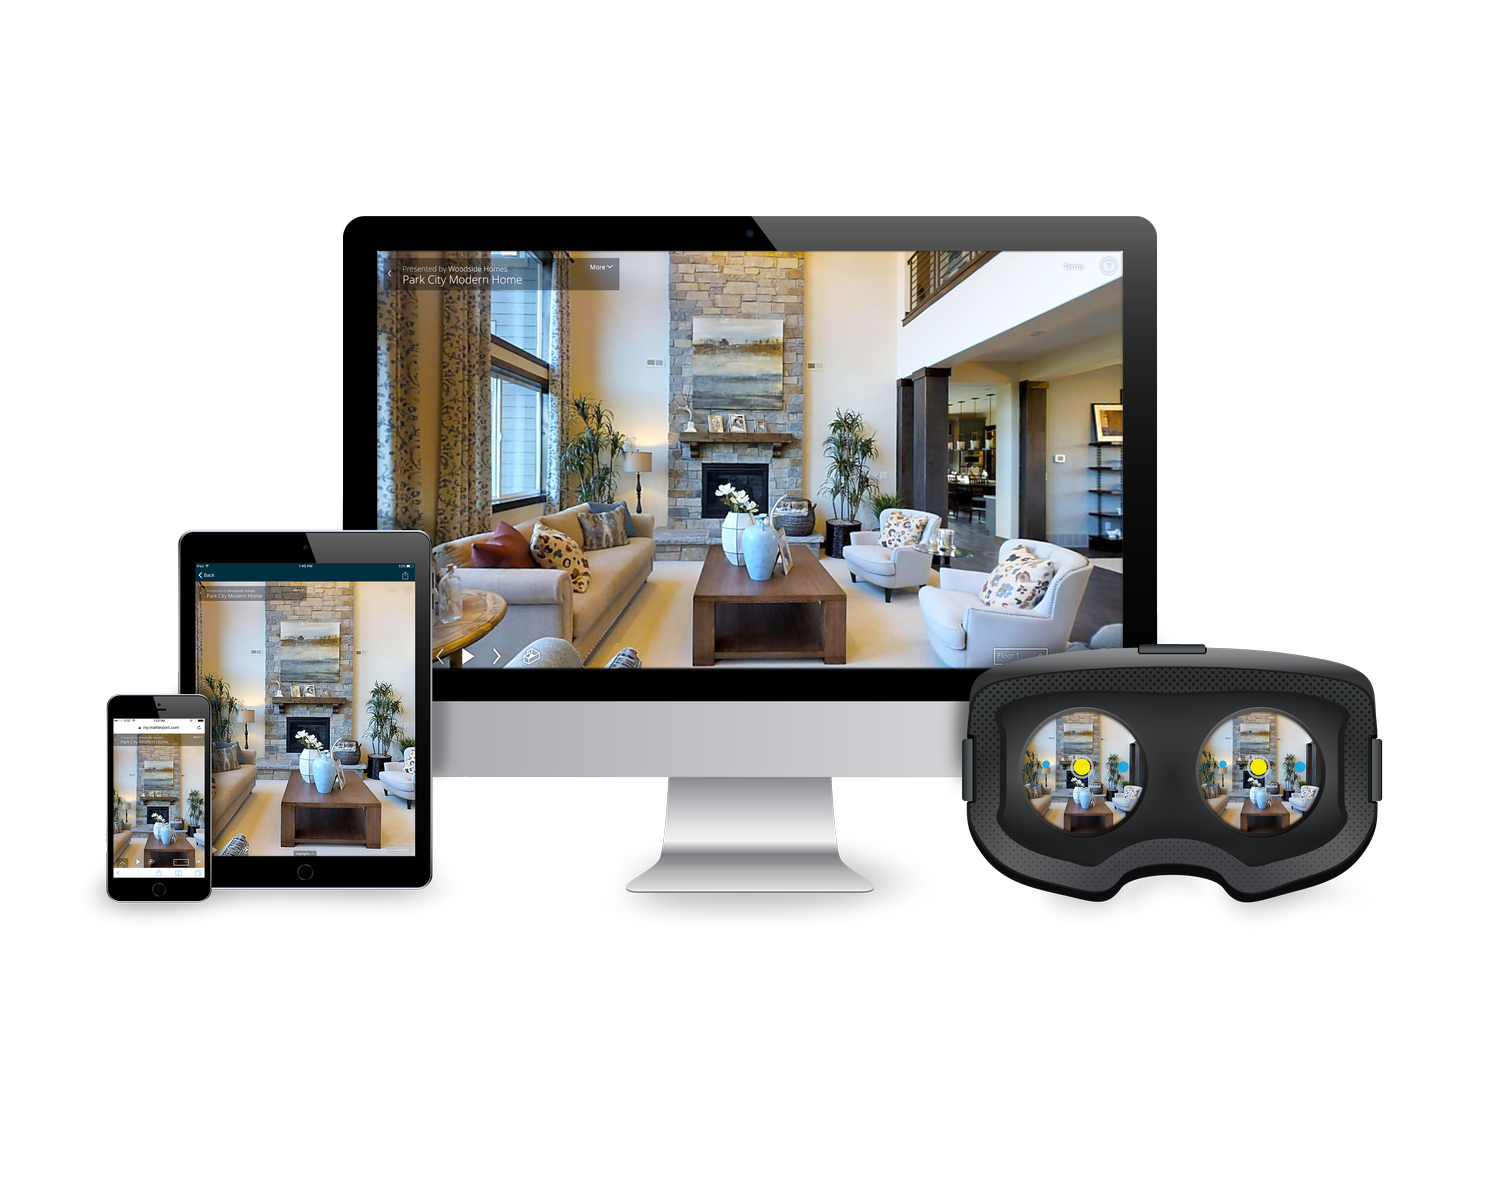 Matterport 3D Virtual Tours  are the most realistic, immersive way to experience a property online.